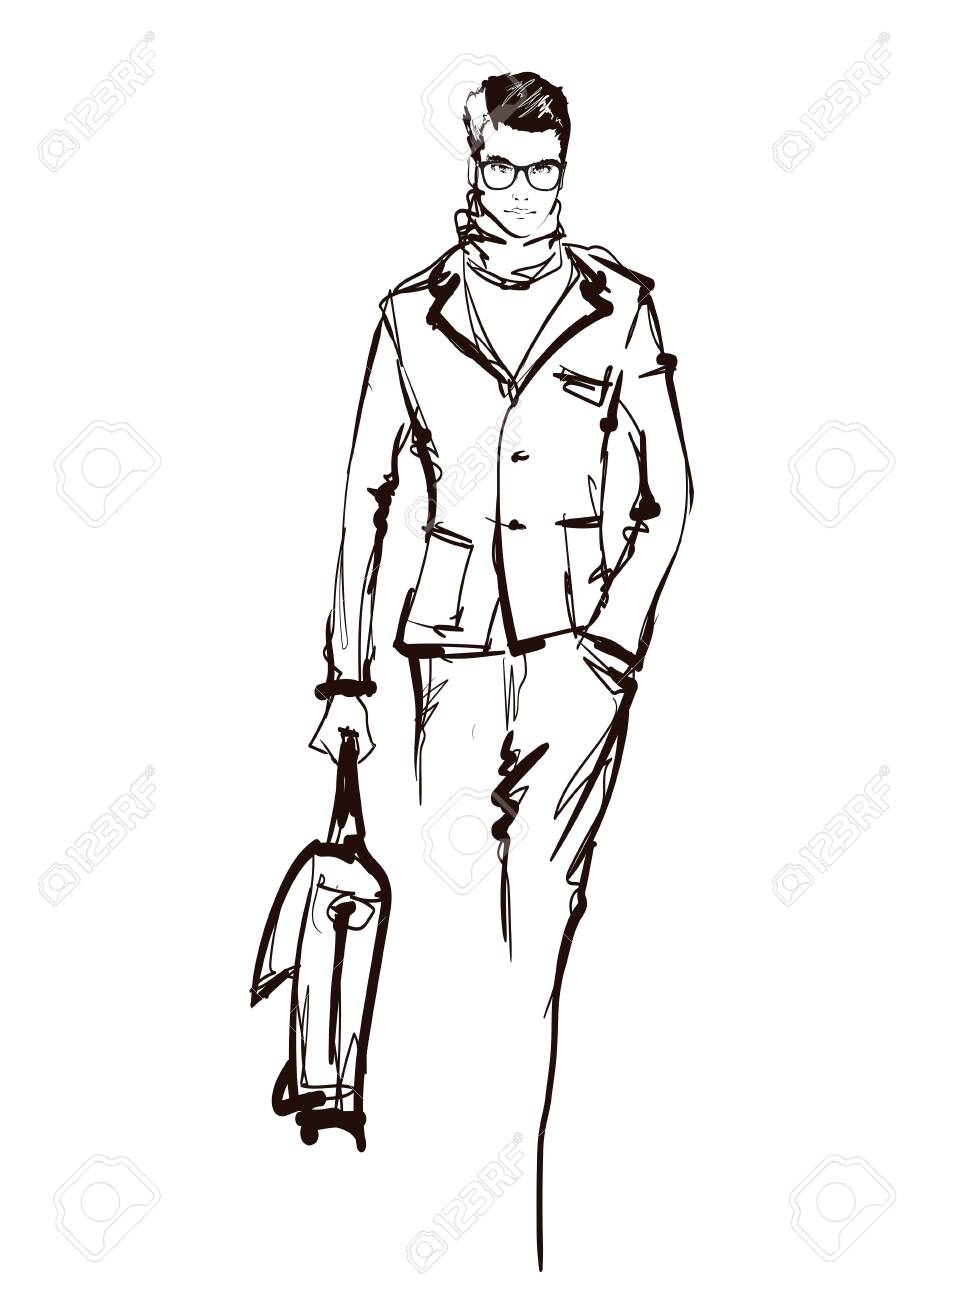 Stylish Fashion Man Stylish Handsome Man In Fashion Clothes Royalty Free Cliparts Vectors And Stock Illustration Image 136664121